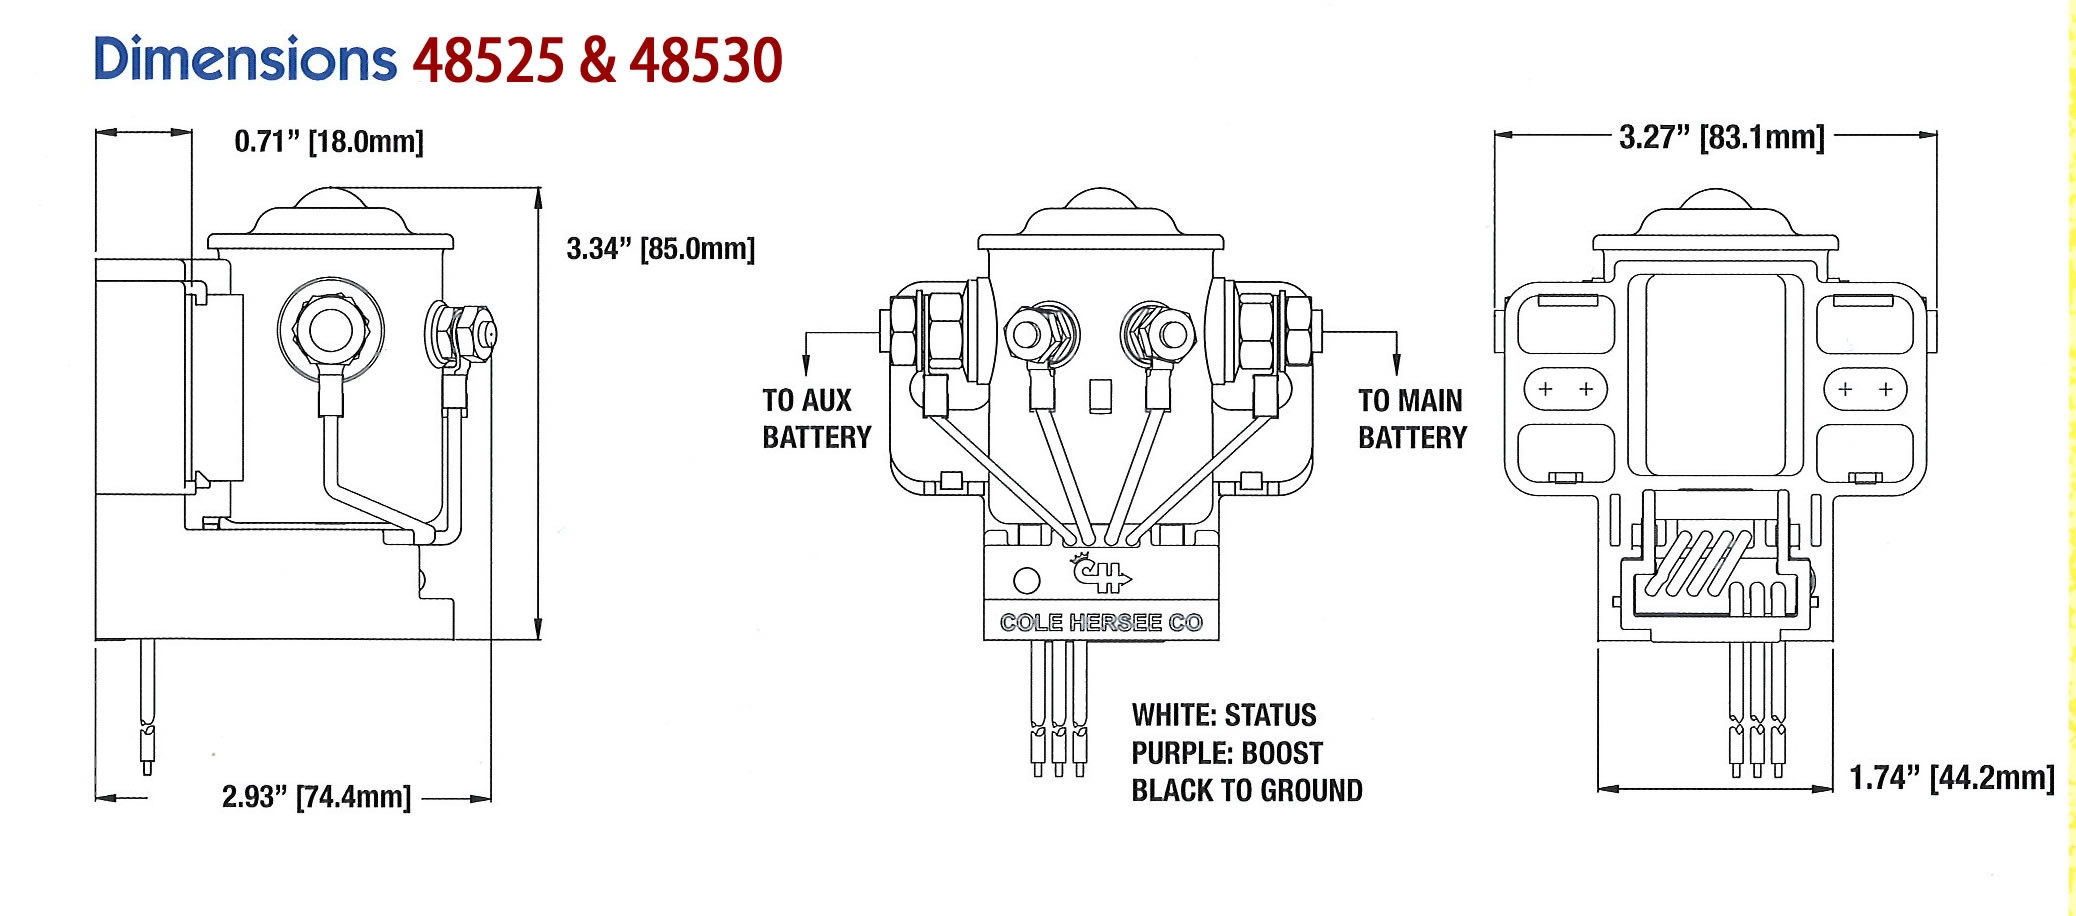 Battery Isolator Wiring Diagram No 08770 Trusted Online Along With Fuel Gauge Library 48160